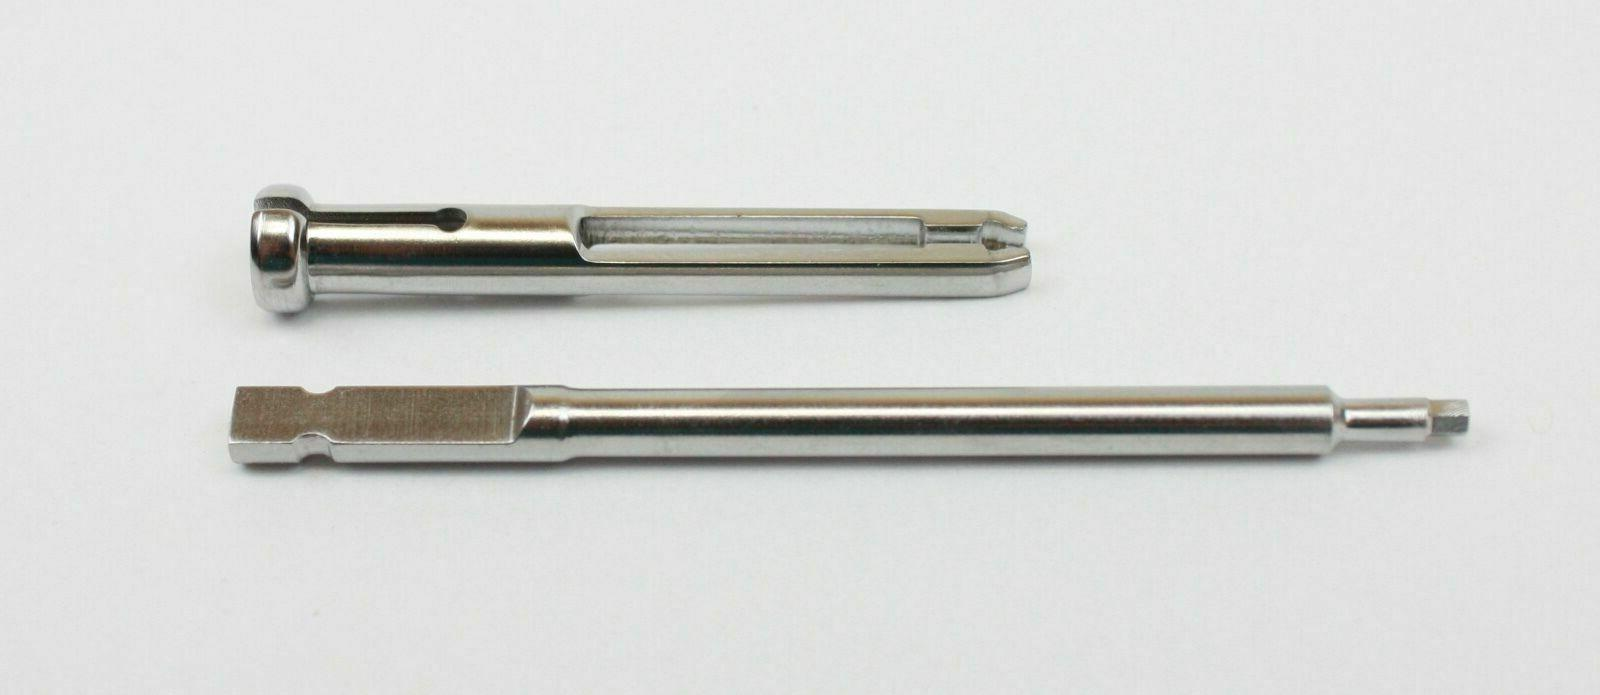 orthopedic instrument quick connect screwdriver shaft 2